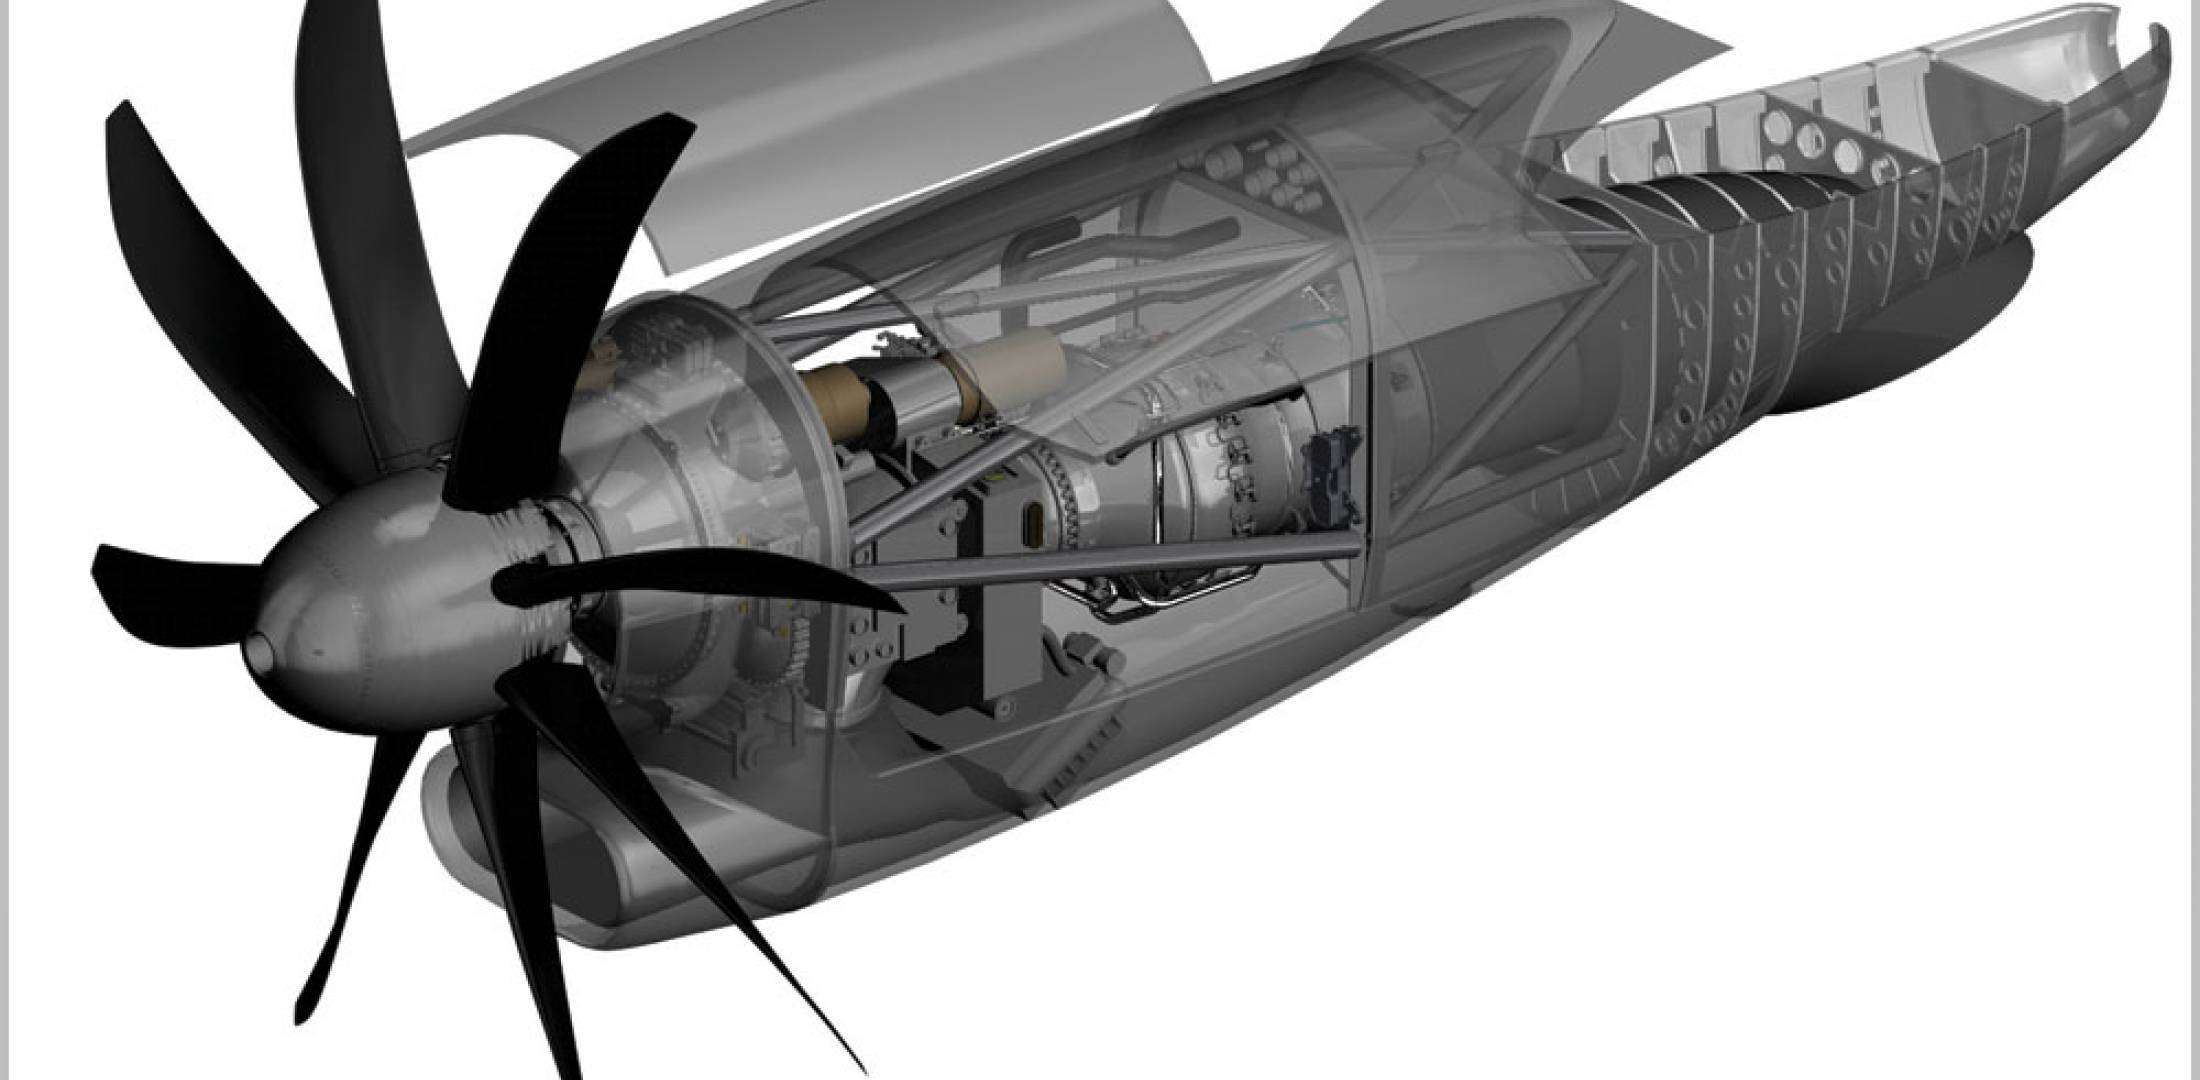 The NGRT features an eight-blade propeller, a new compressor and a Talon combustor borrowed from larger Pratt & Whitney models.